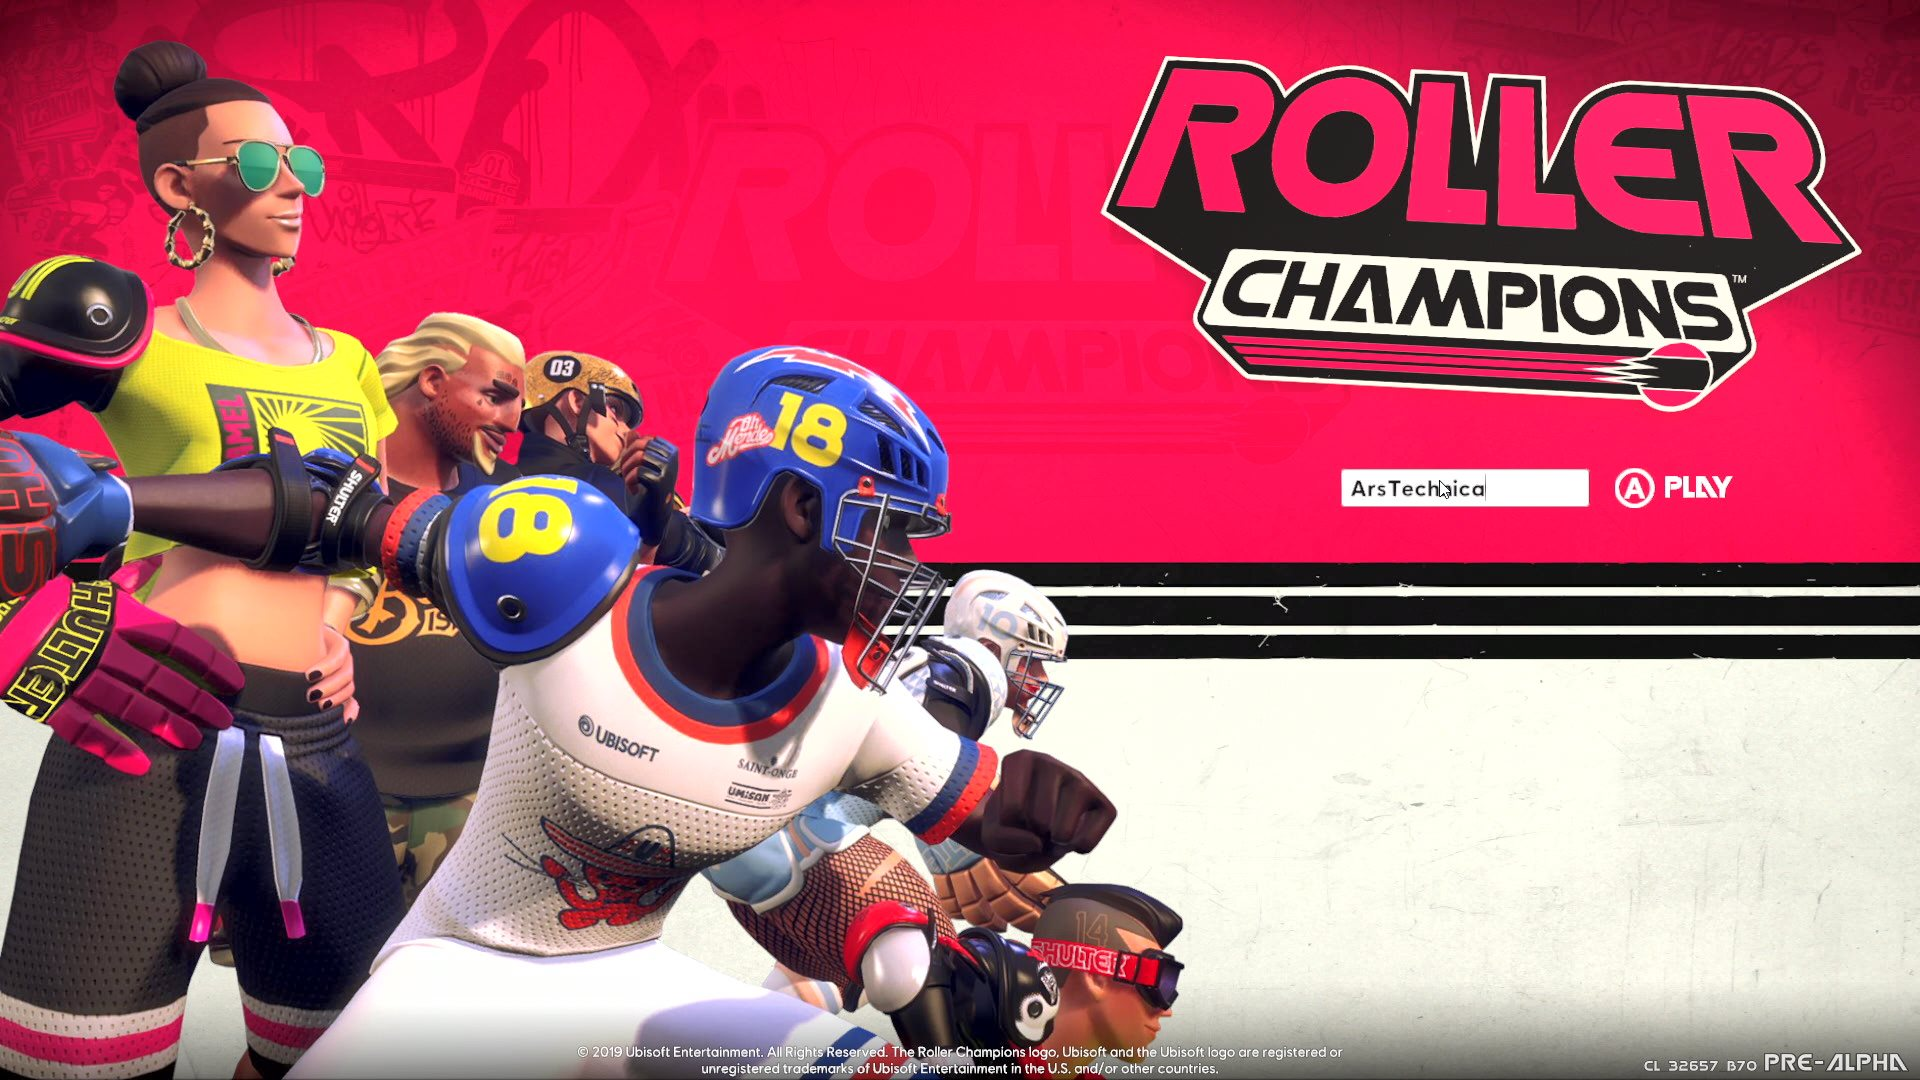 Roller Champions hands-on premiere: Ubisoft's fun, F2P answer to